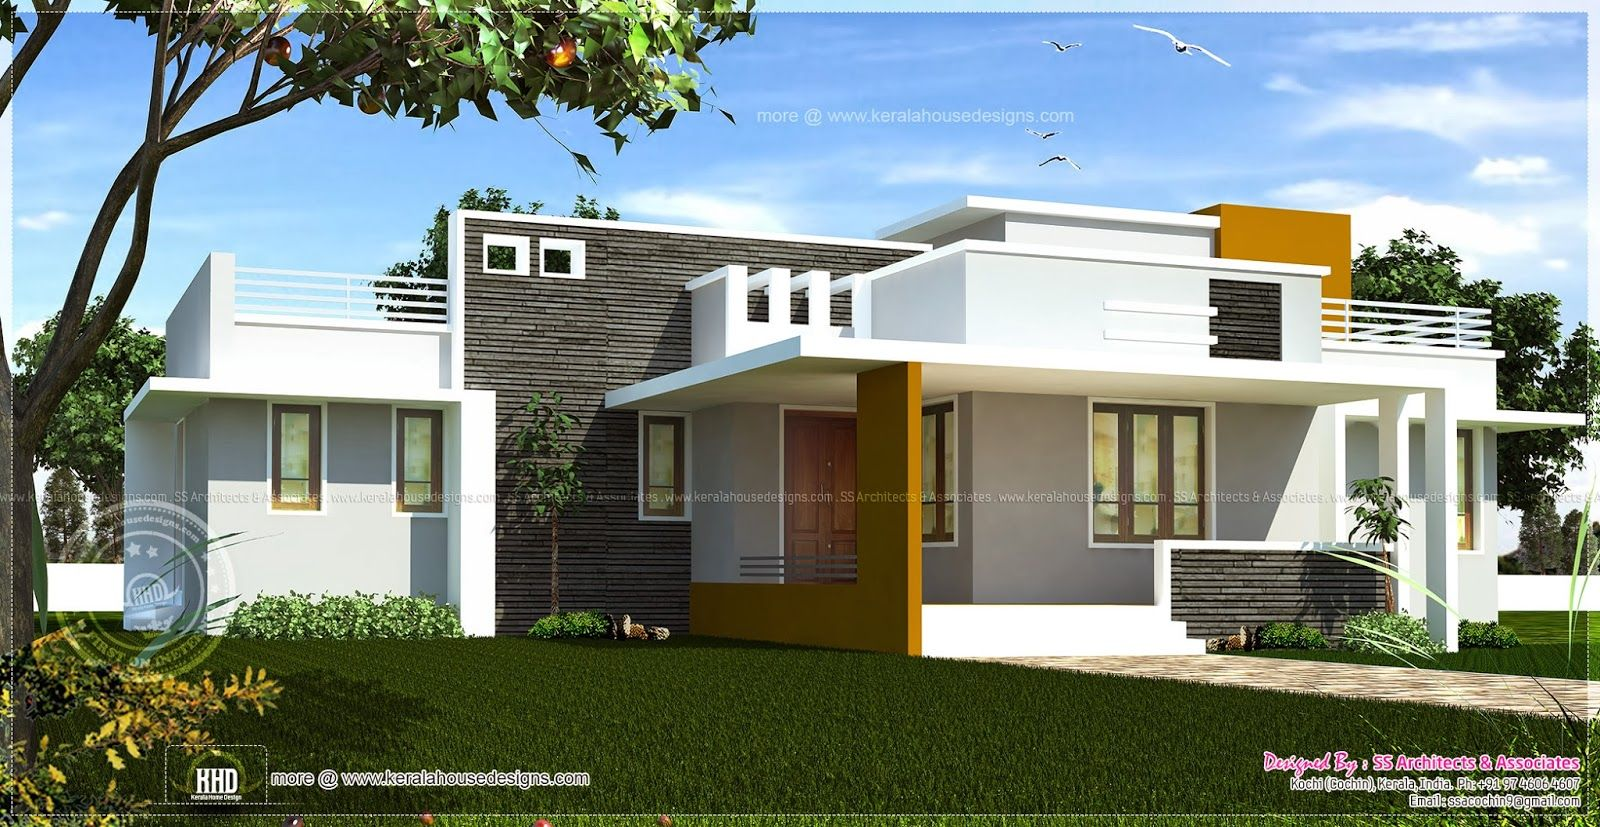 Excellent single home designs single floor contemporary - Single story 4 bedroom modern house plans ...